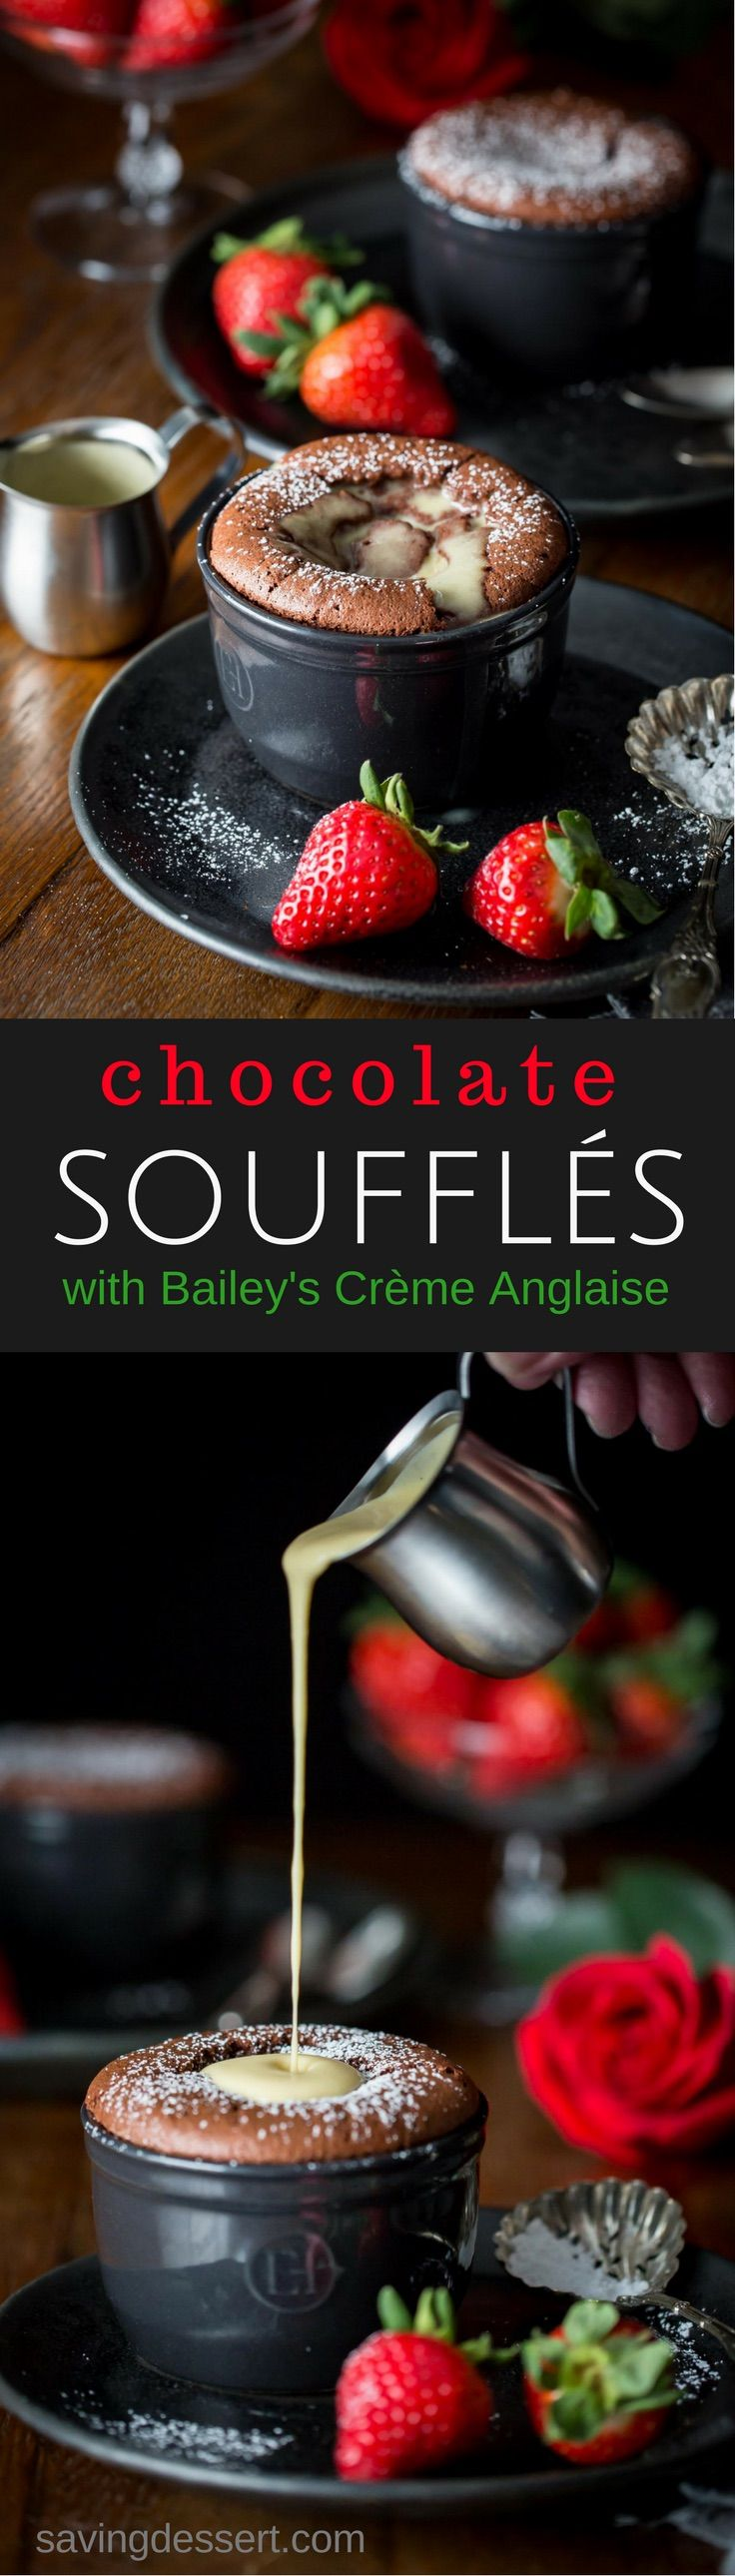 Chocolate Soufflé with Bailey's Crème Anglaise - Light as air, and melt in your mouth creamy, our soufflés taste luxurious and couldn't be easier to make!